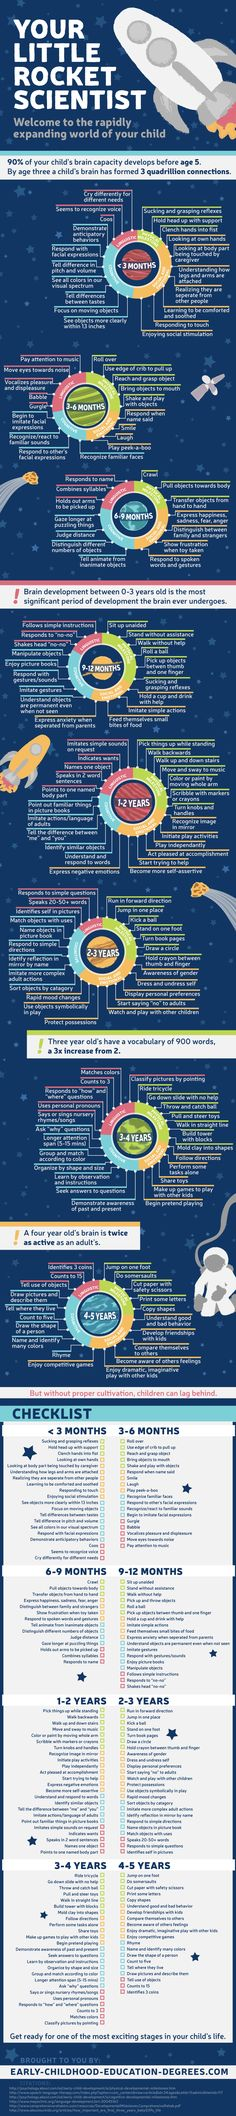 The Milestones of a Child's Mind Development Infographic shows how a child begins developing from day one.